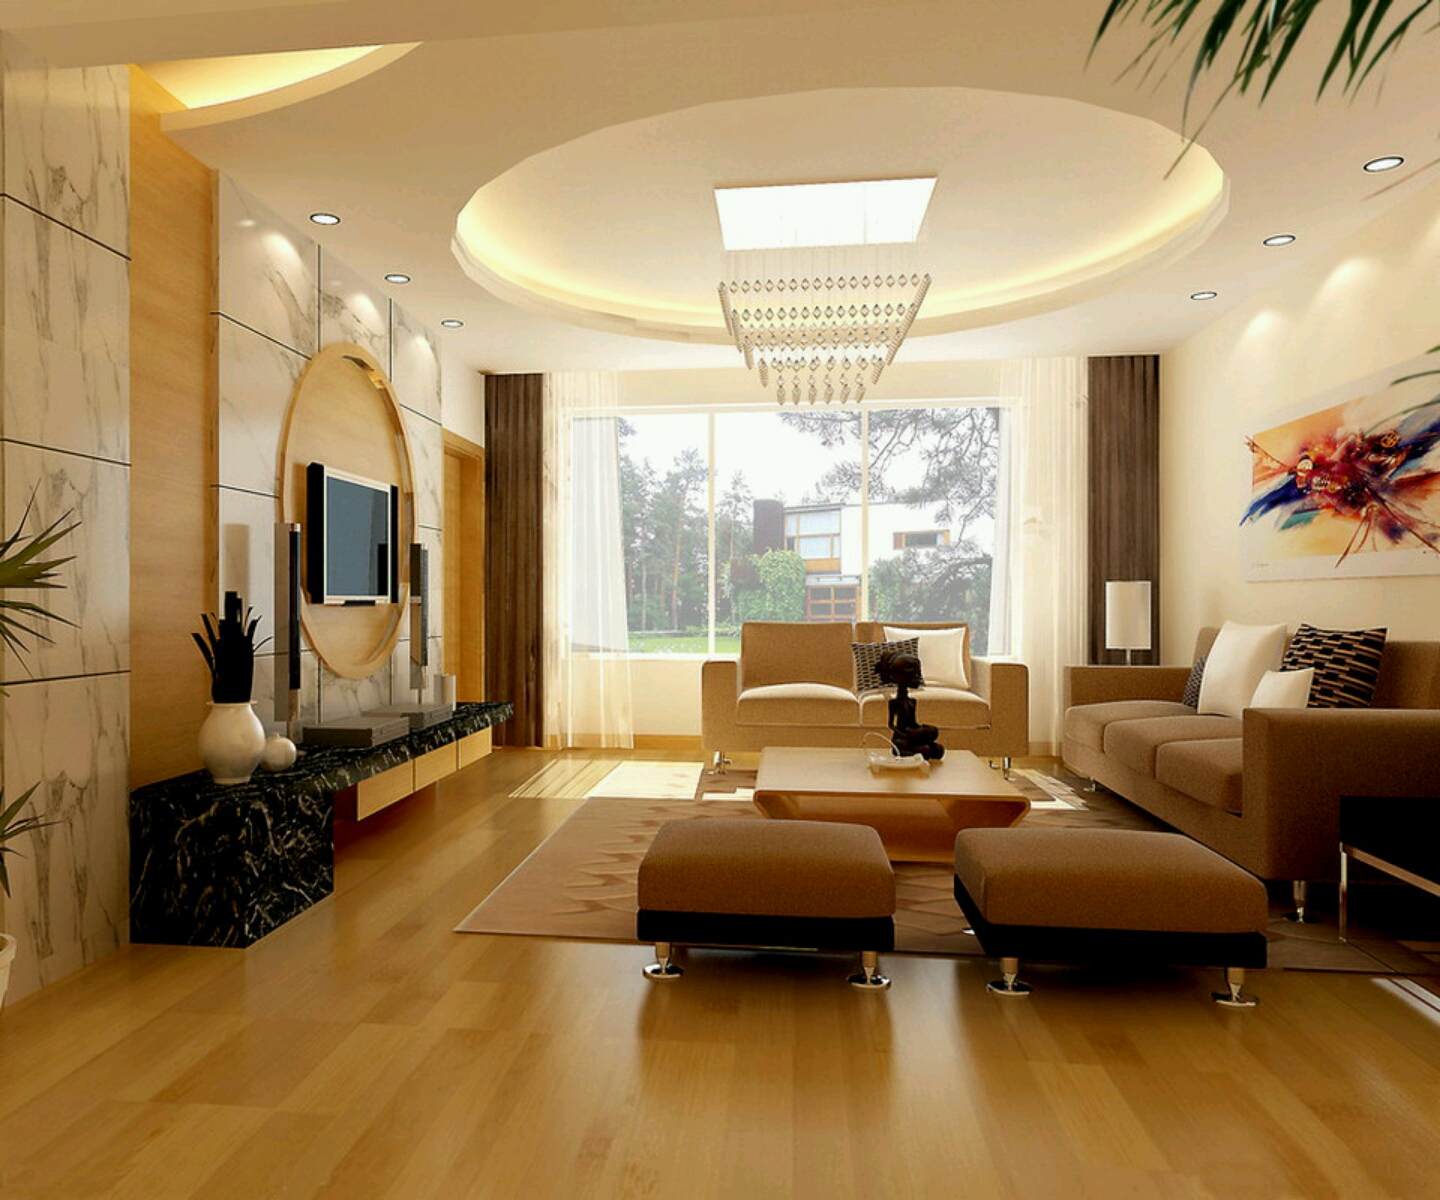 Modern interior decoration living rooms ceiling designs for Living room interiors designs photos